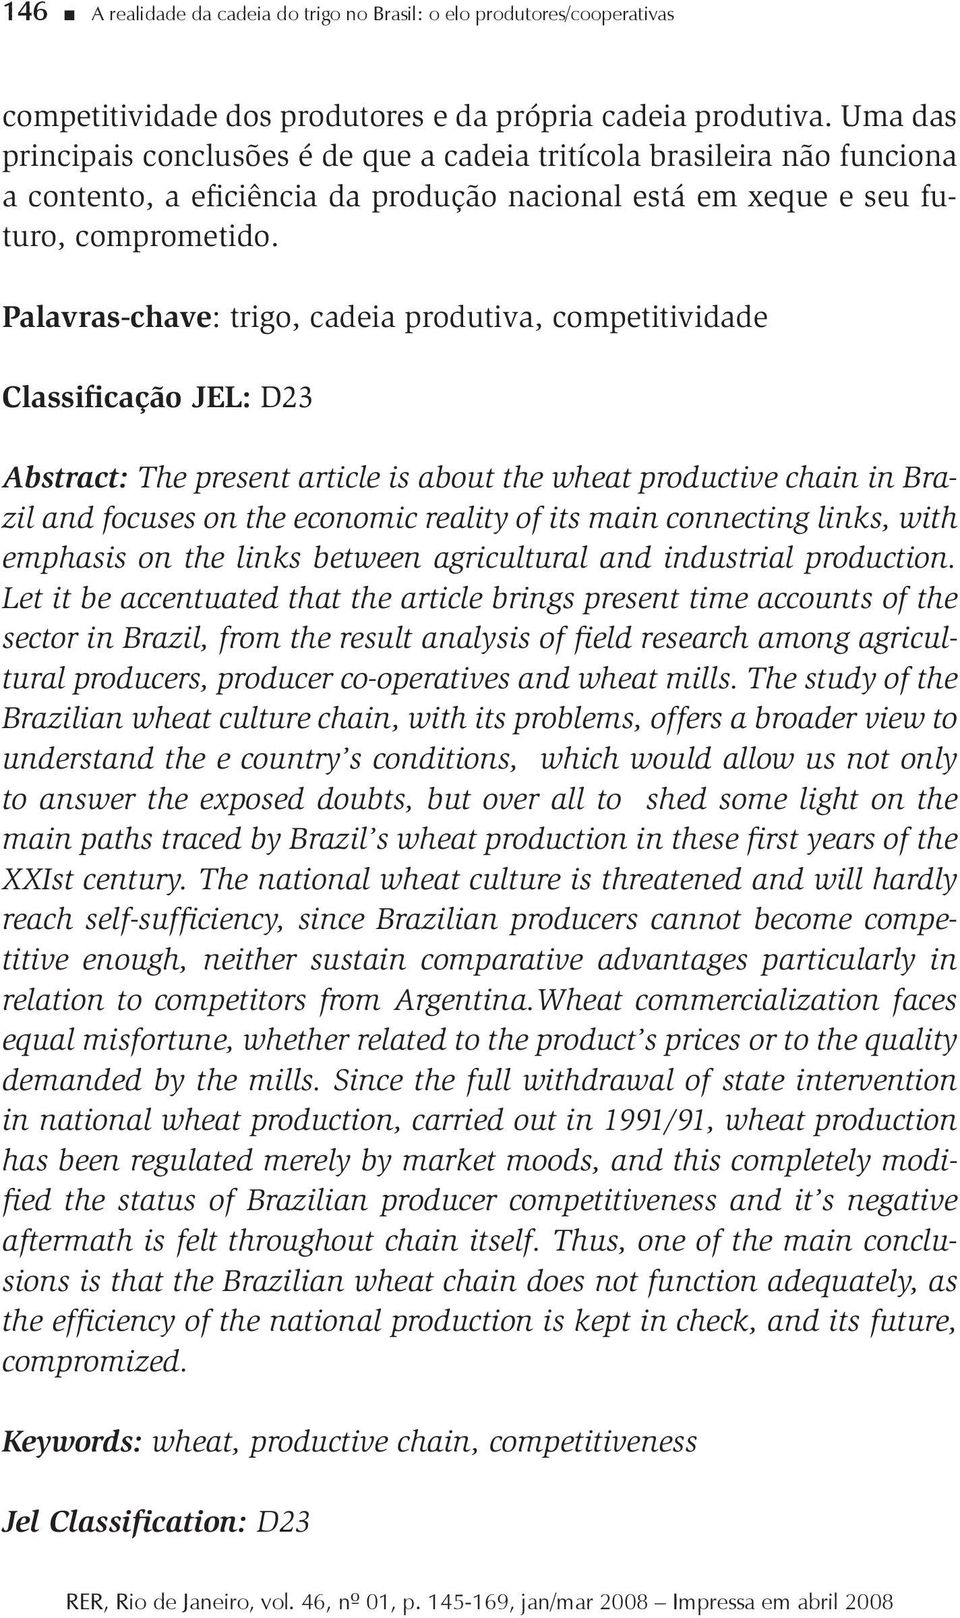 Palavras-chave: trigo, cadeia produtiva, competitividade Classificação JEL: D23 Abstract: The present article is about the wheat productive chain in Brazil and focuses on the economic reality of its